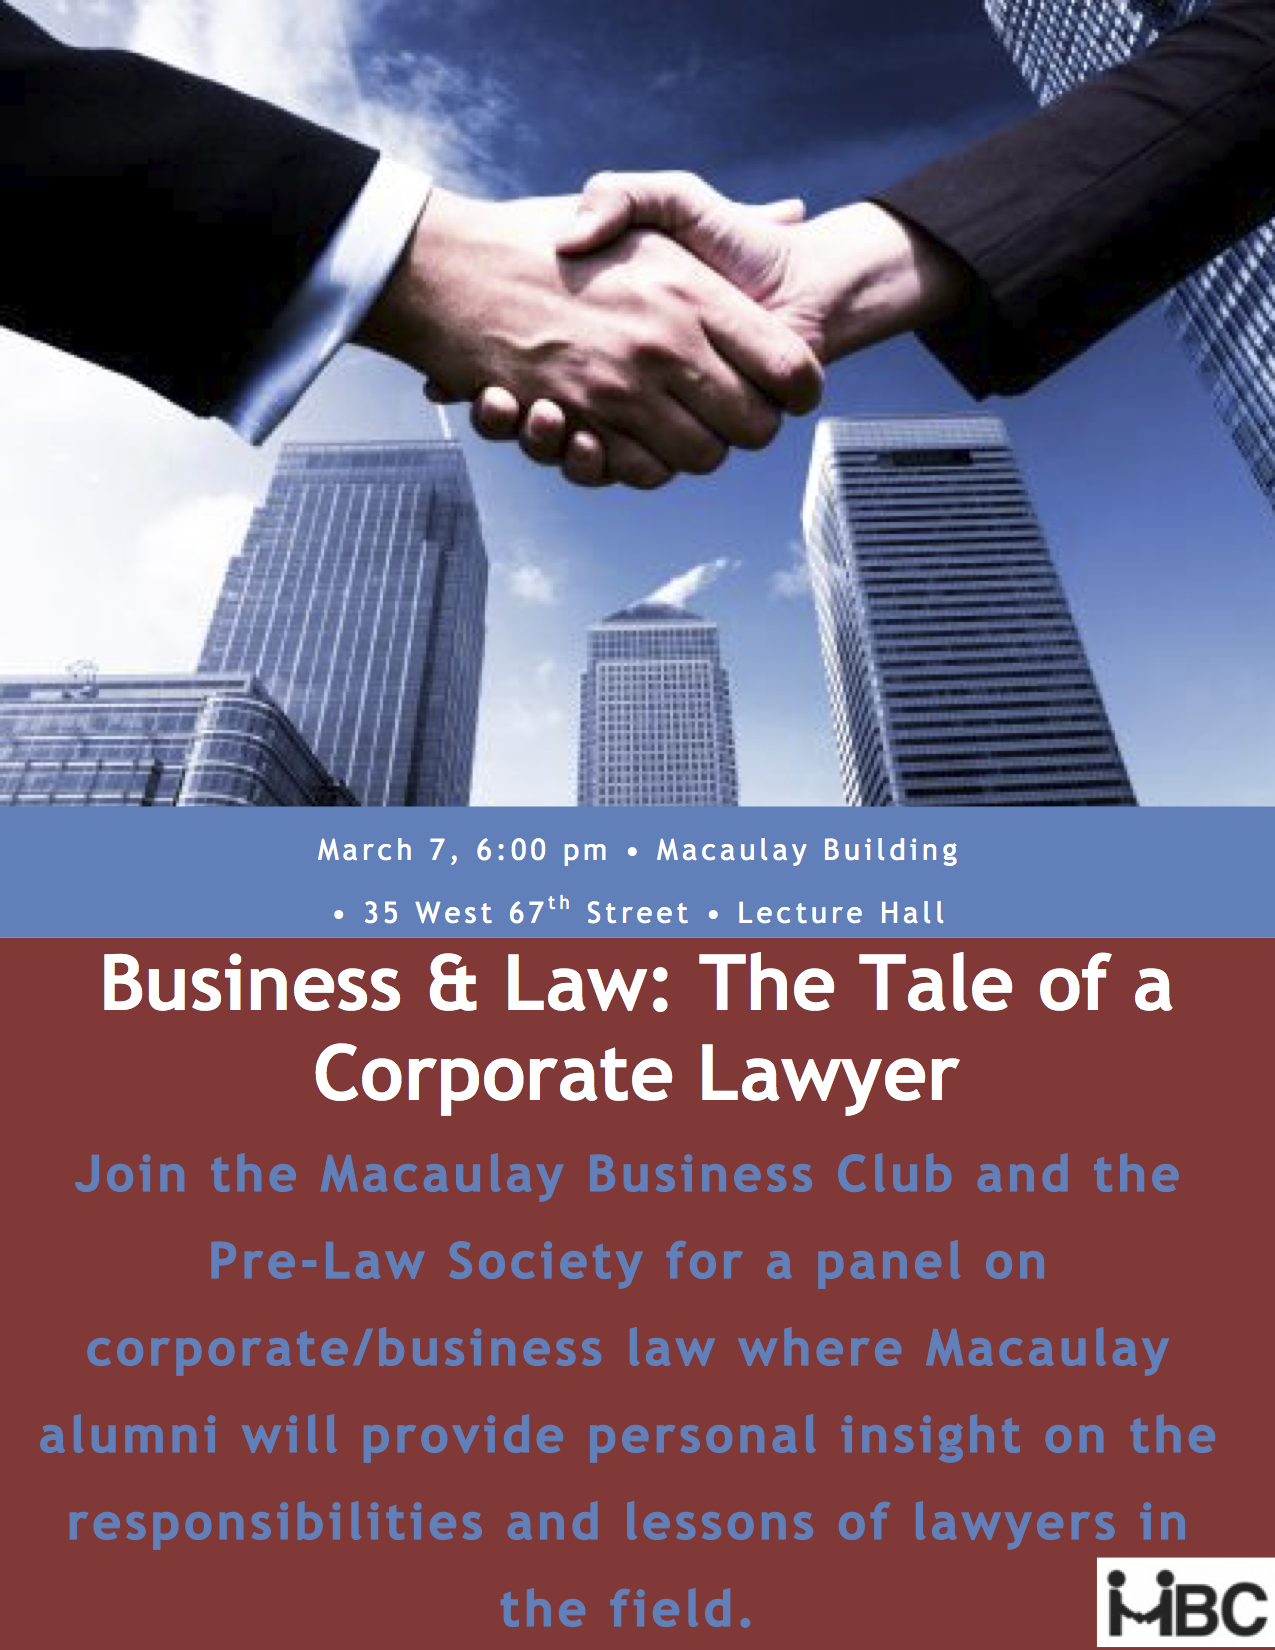 business law the tale of a corporate lawyer - Corporate Law Lawyer